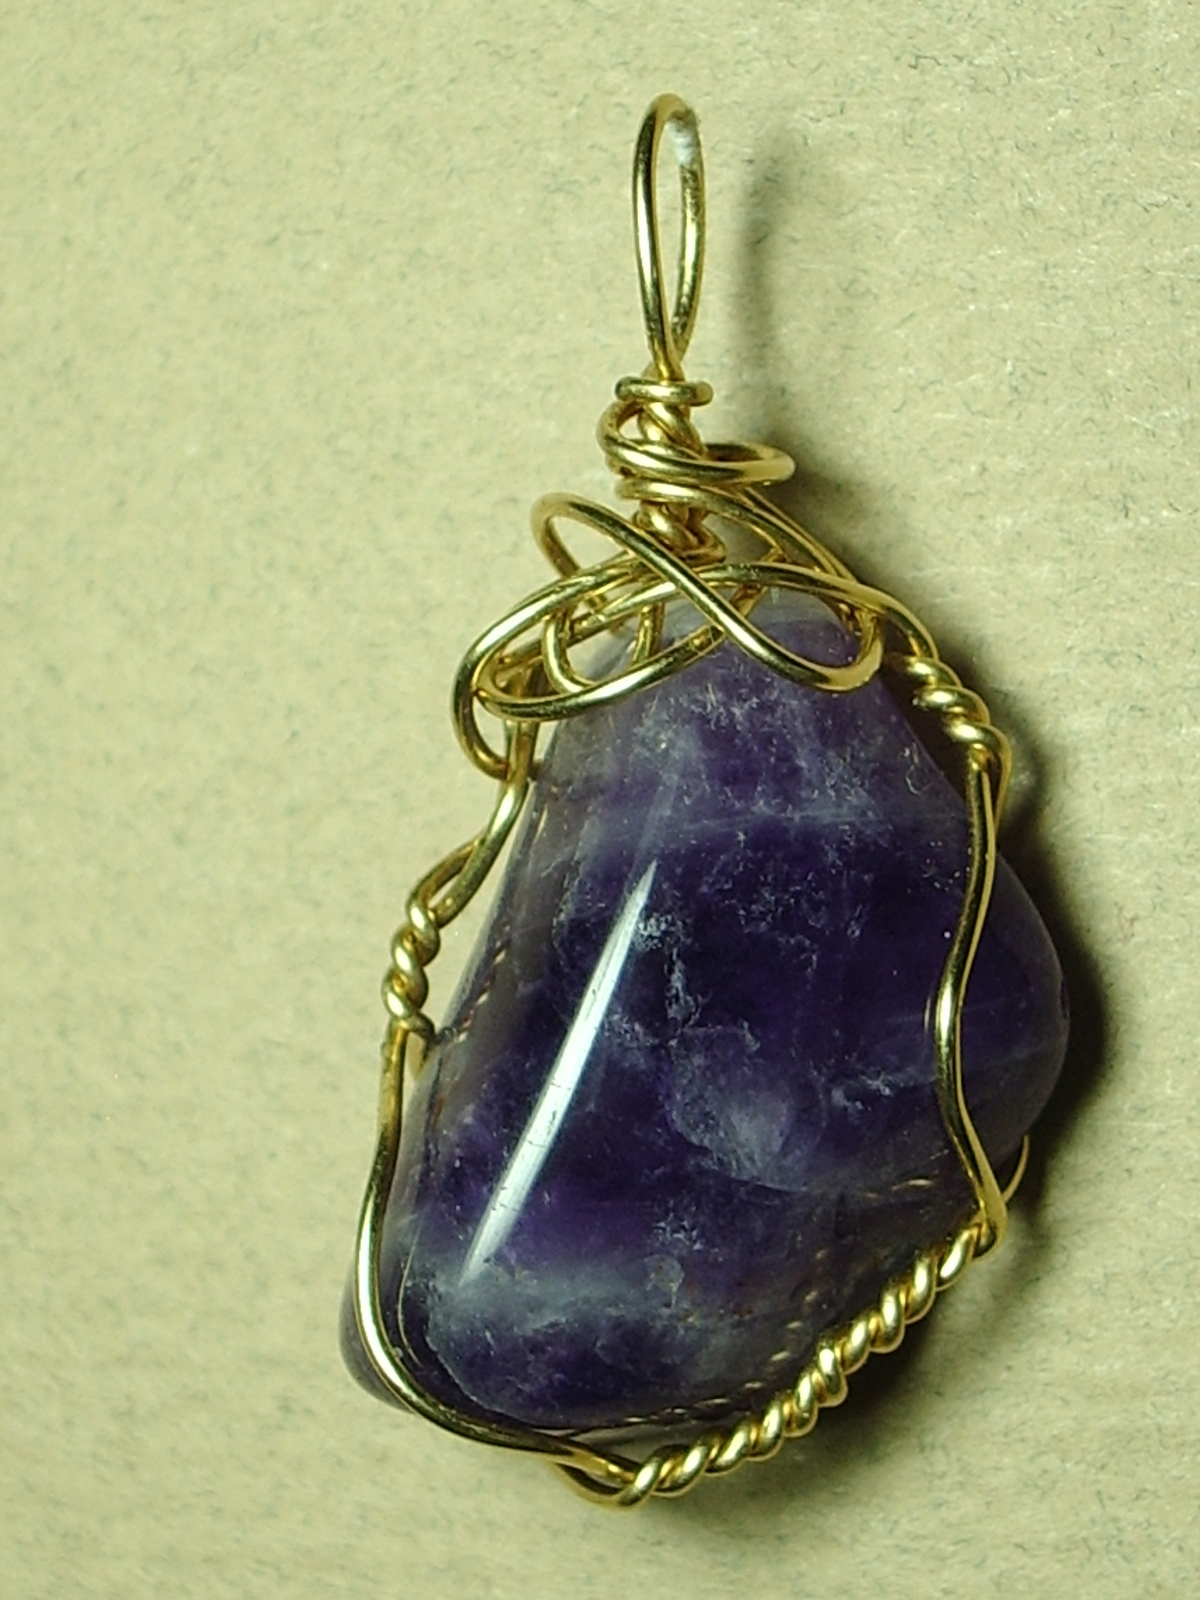 Primary image for Amethyst Pendant Wire Wrapped 14/20 Gold Filled Handcrafted by Jemel